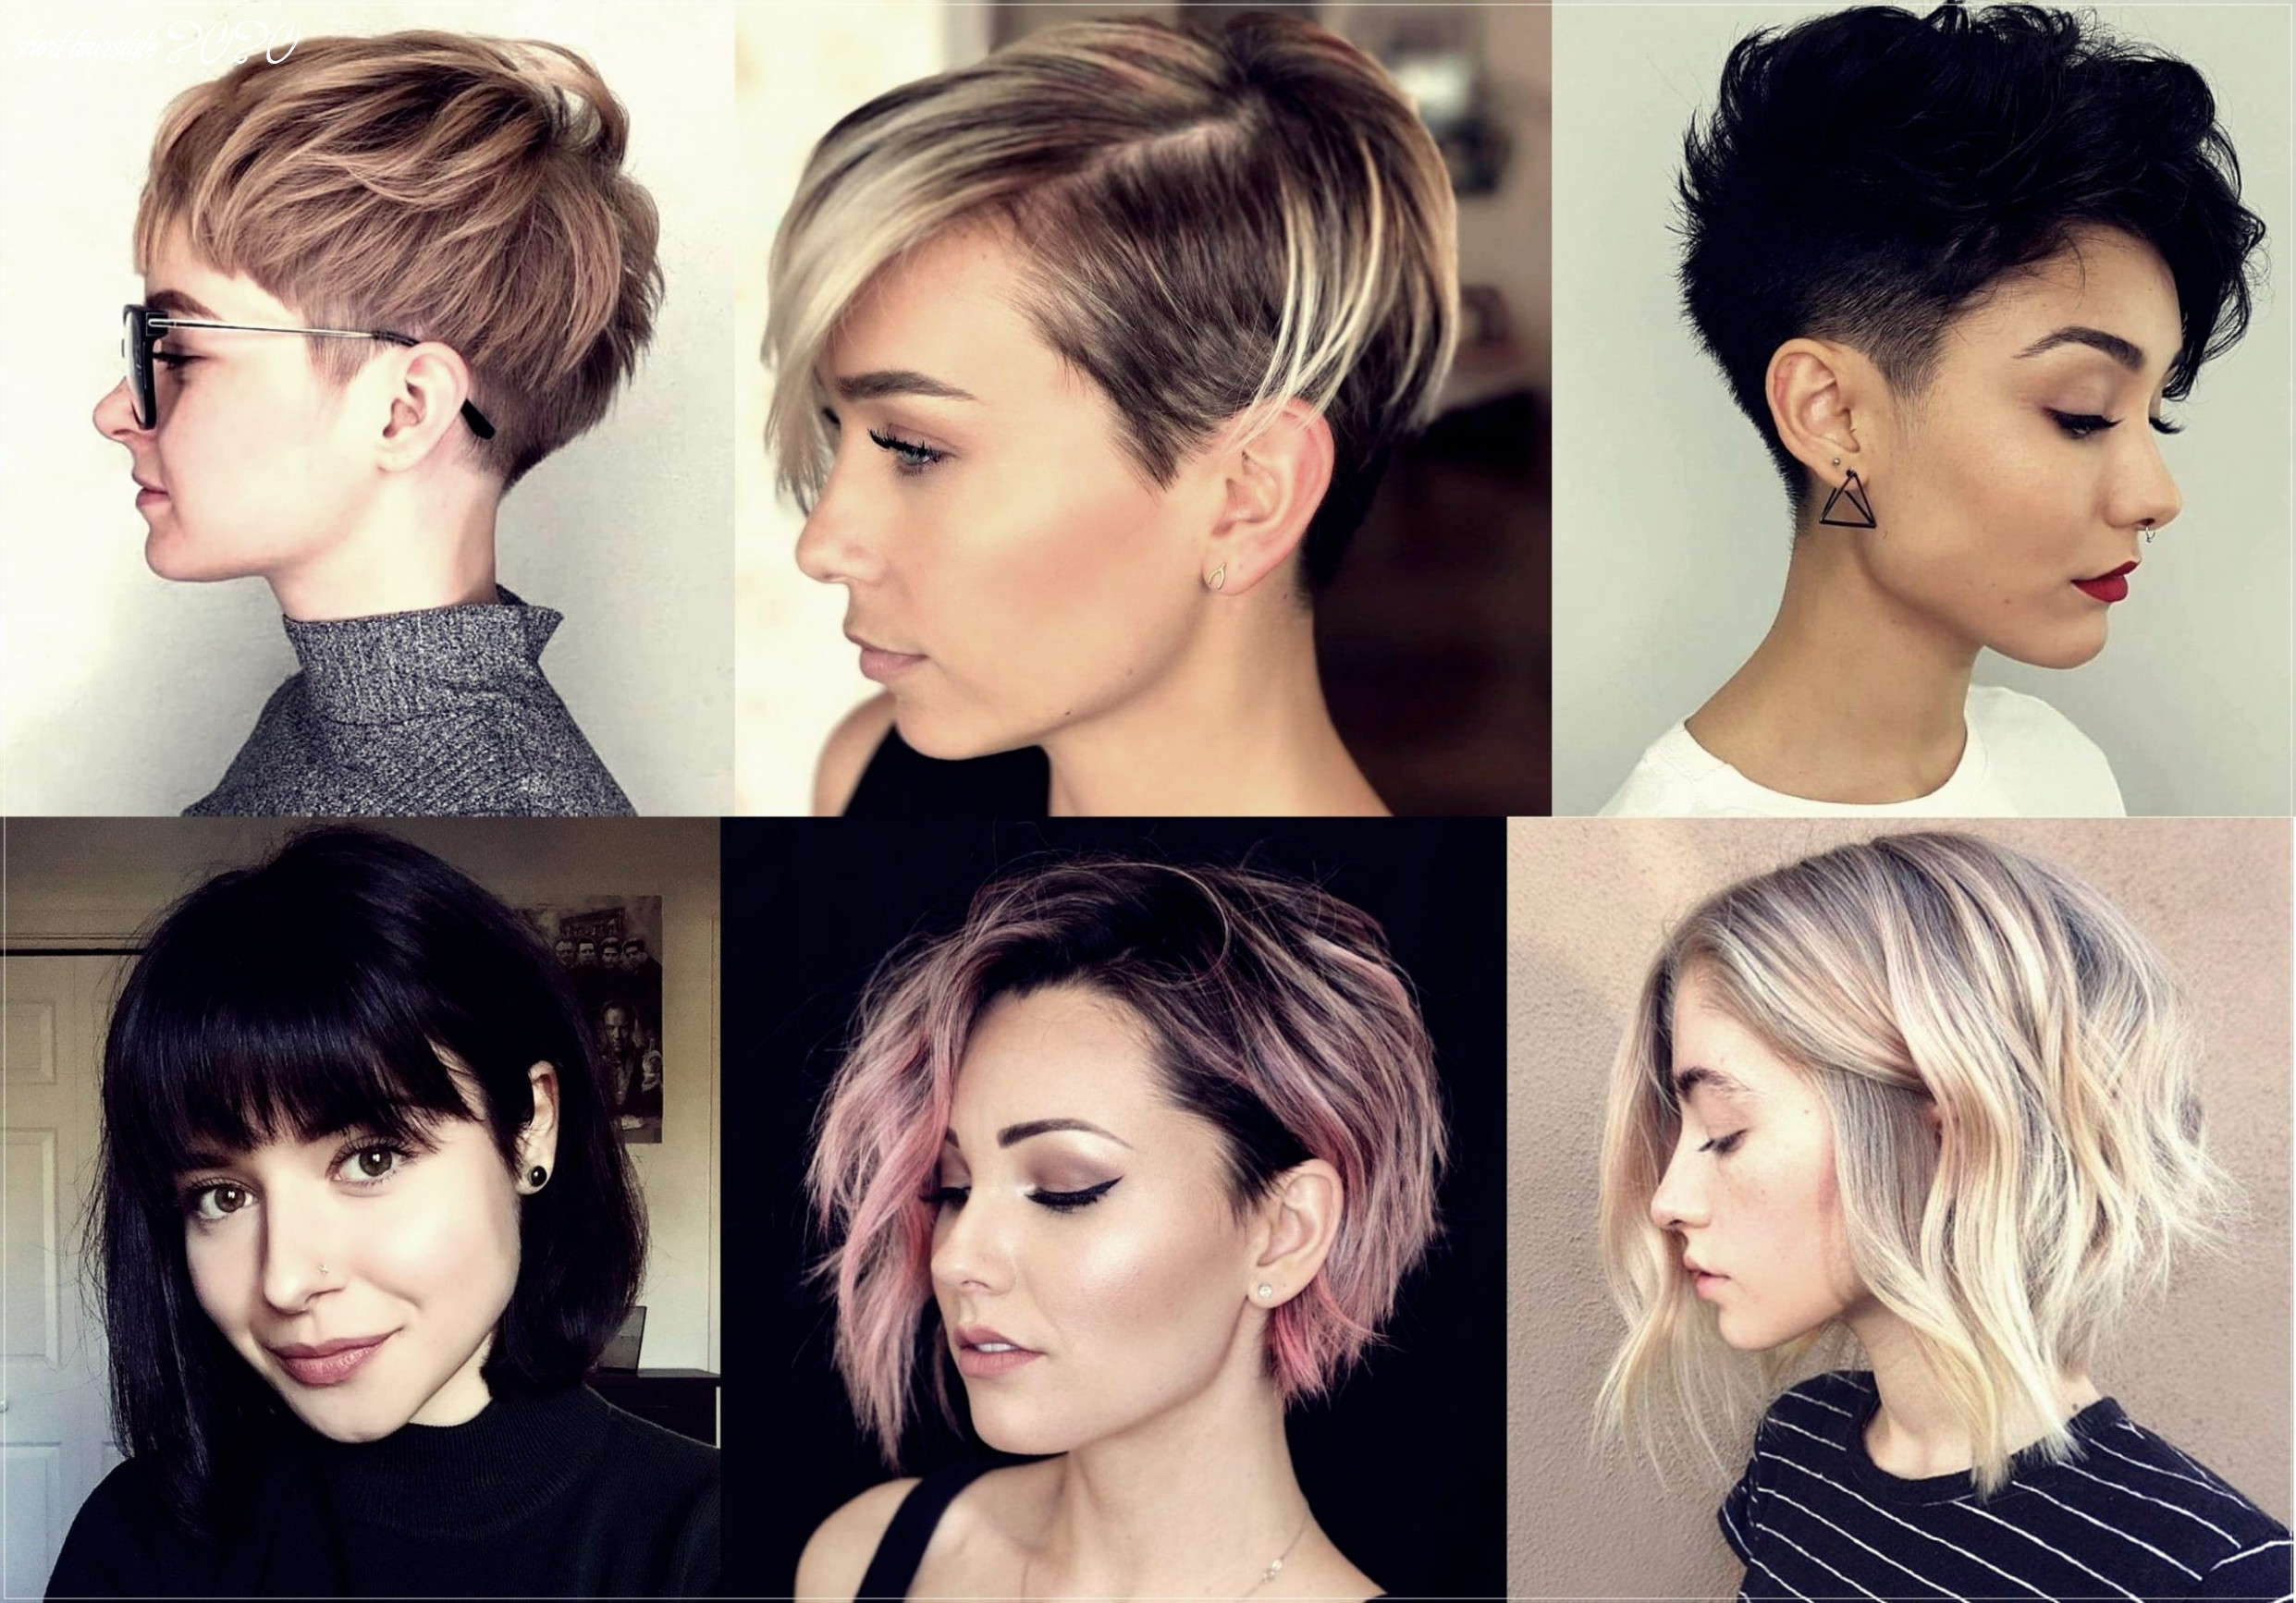 Short haircuts 9: 9 photos and trends | short hairstyle 2020